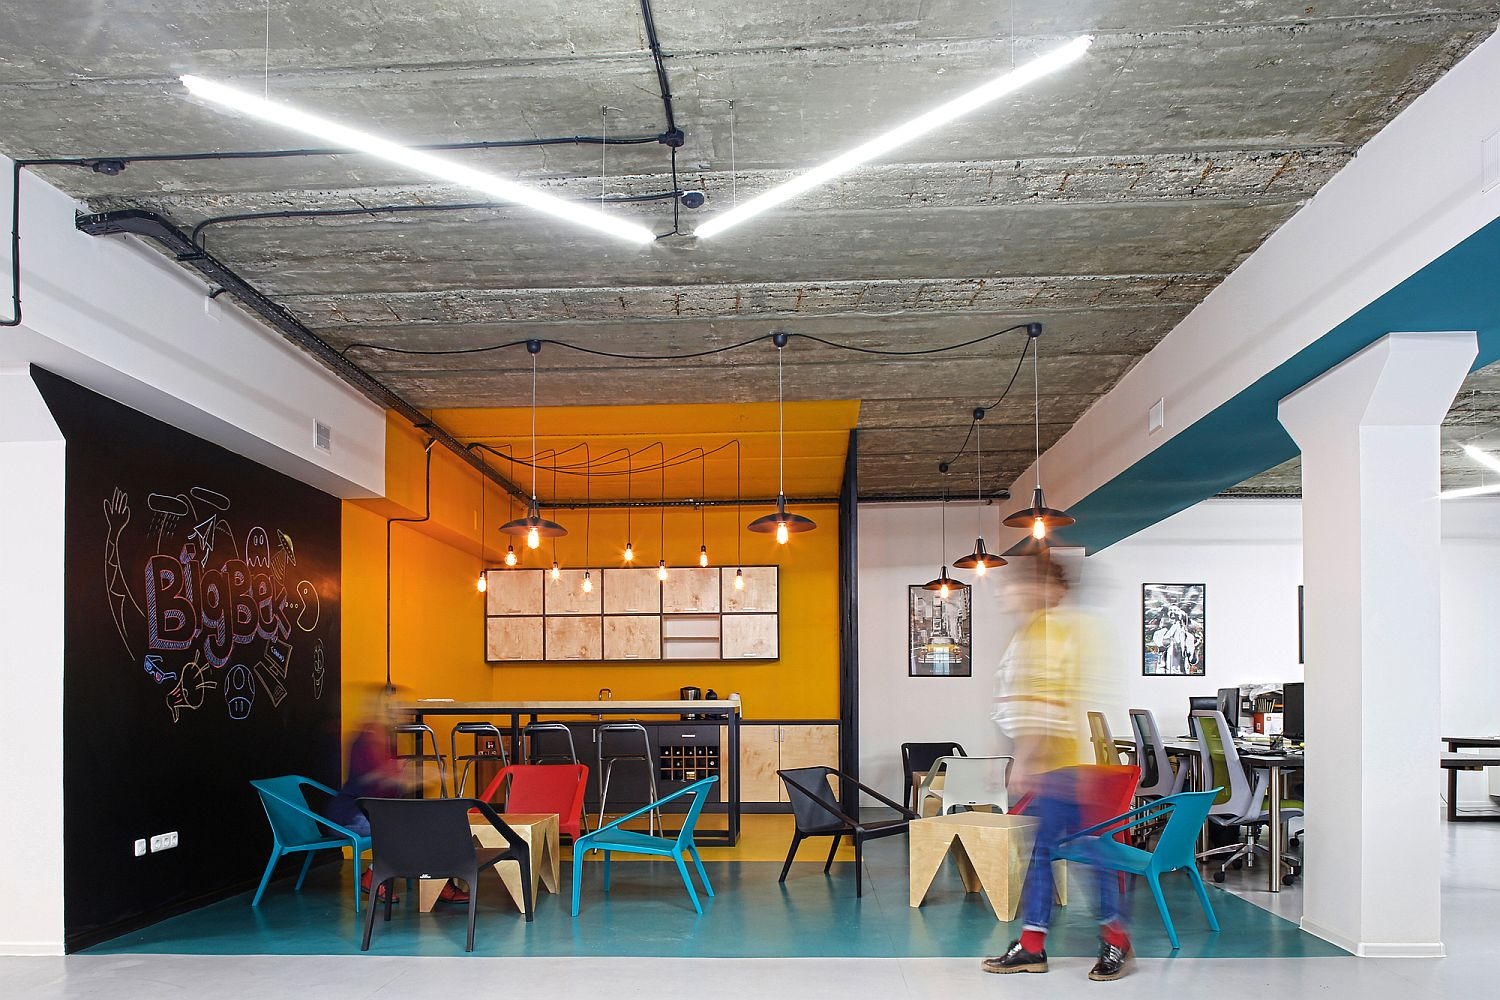 Innovative office in Armenia is filled with color and industrial flair A World of Color and Creative Design: Modern Industrial Office in Armenia